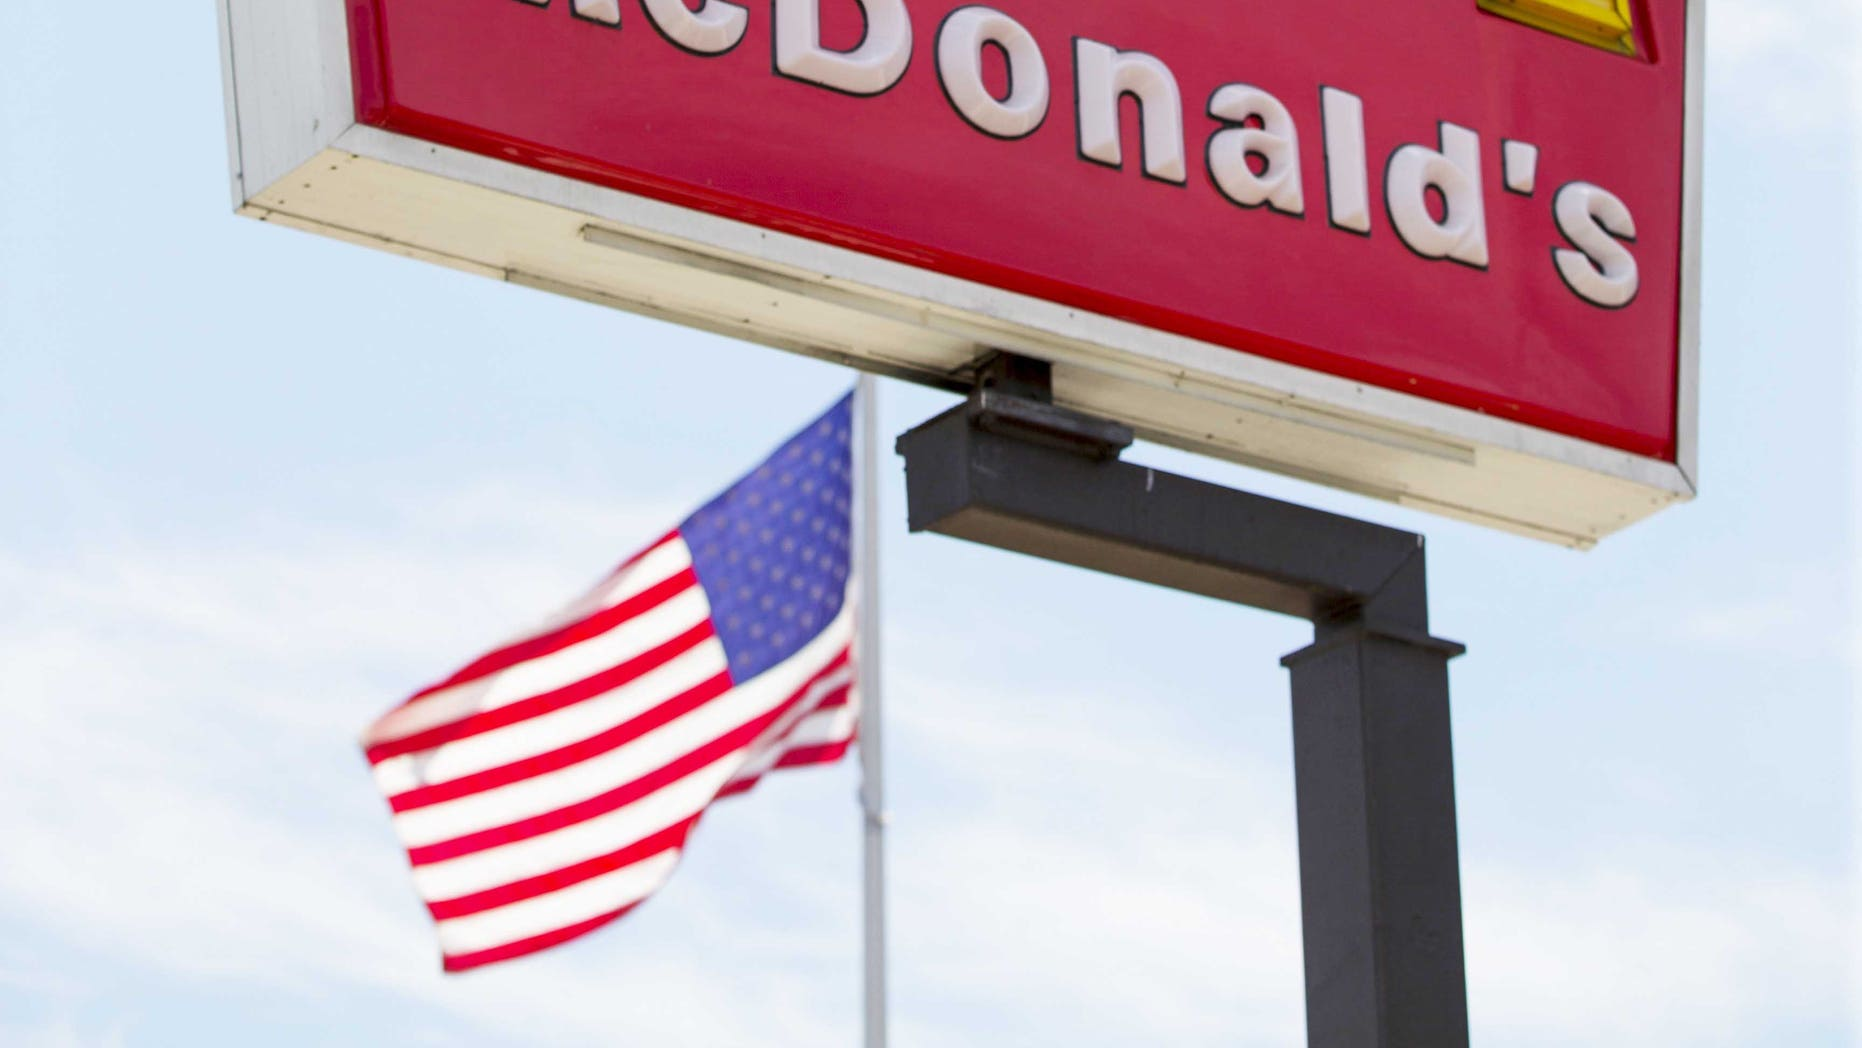 Want free Big Macs for life? McDonald's says you have to earn it.